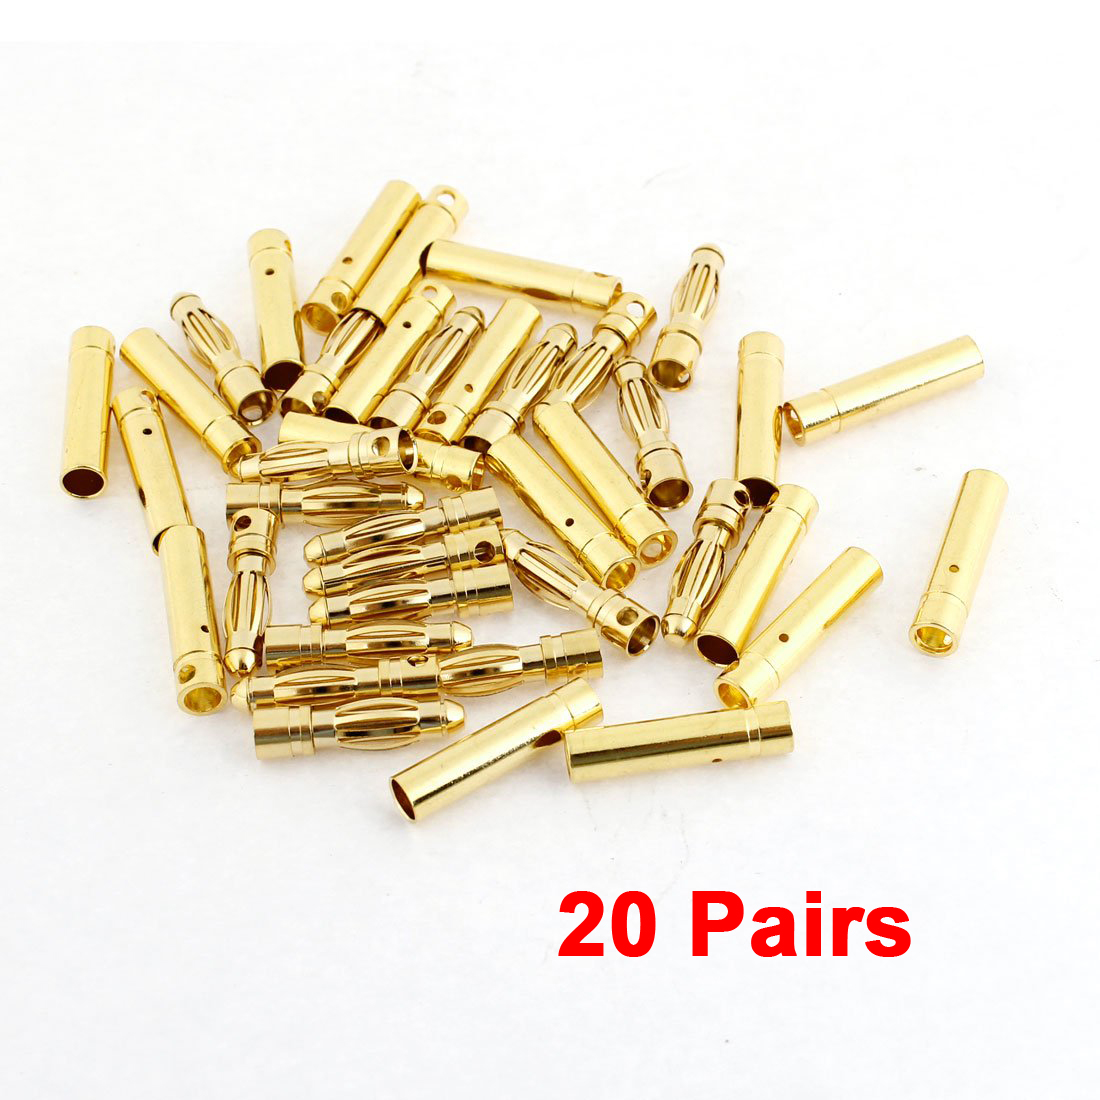 DHDL-New 20 Pairs Gold Tone Metal RC Banana Bullet Plug Connector Male Female 4mm imc hot new 20 pairs gold tone metal rc banana bullet plug connector male female 4mm